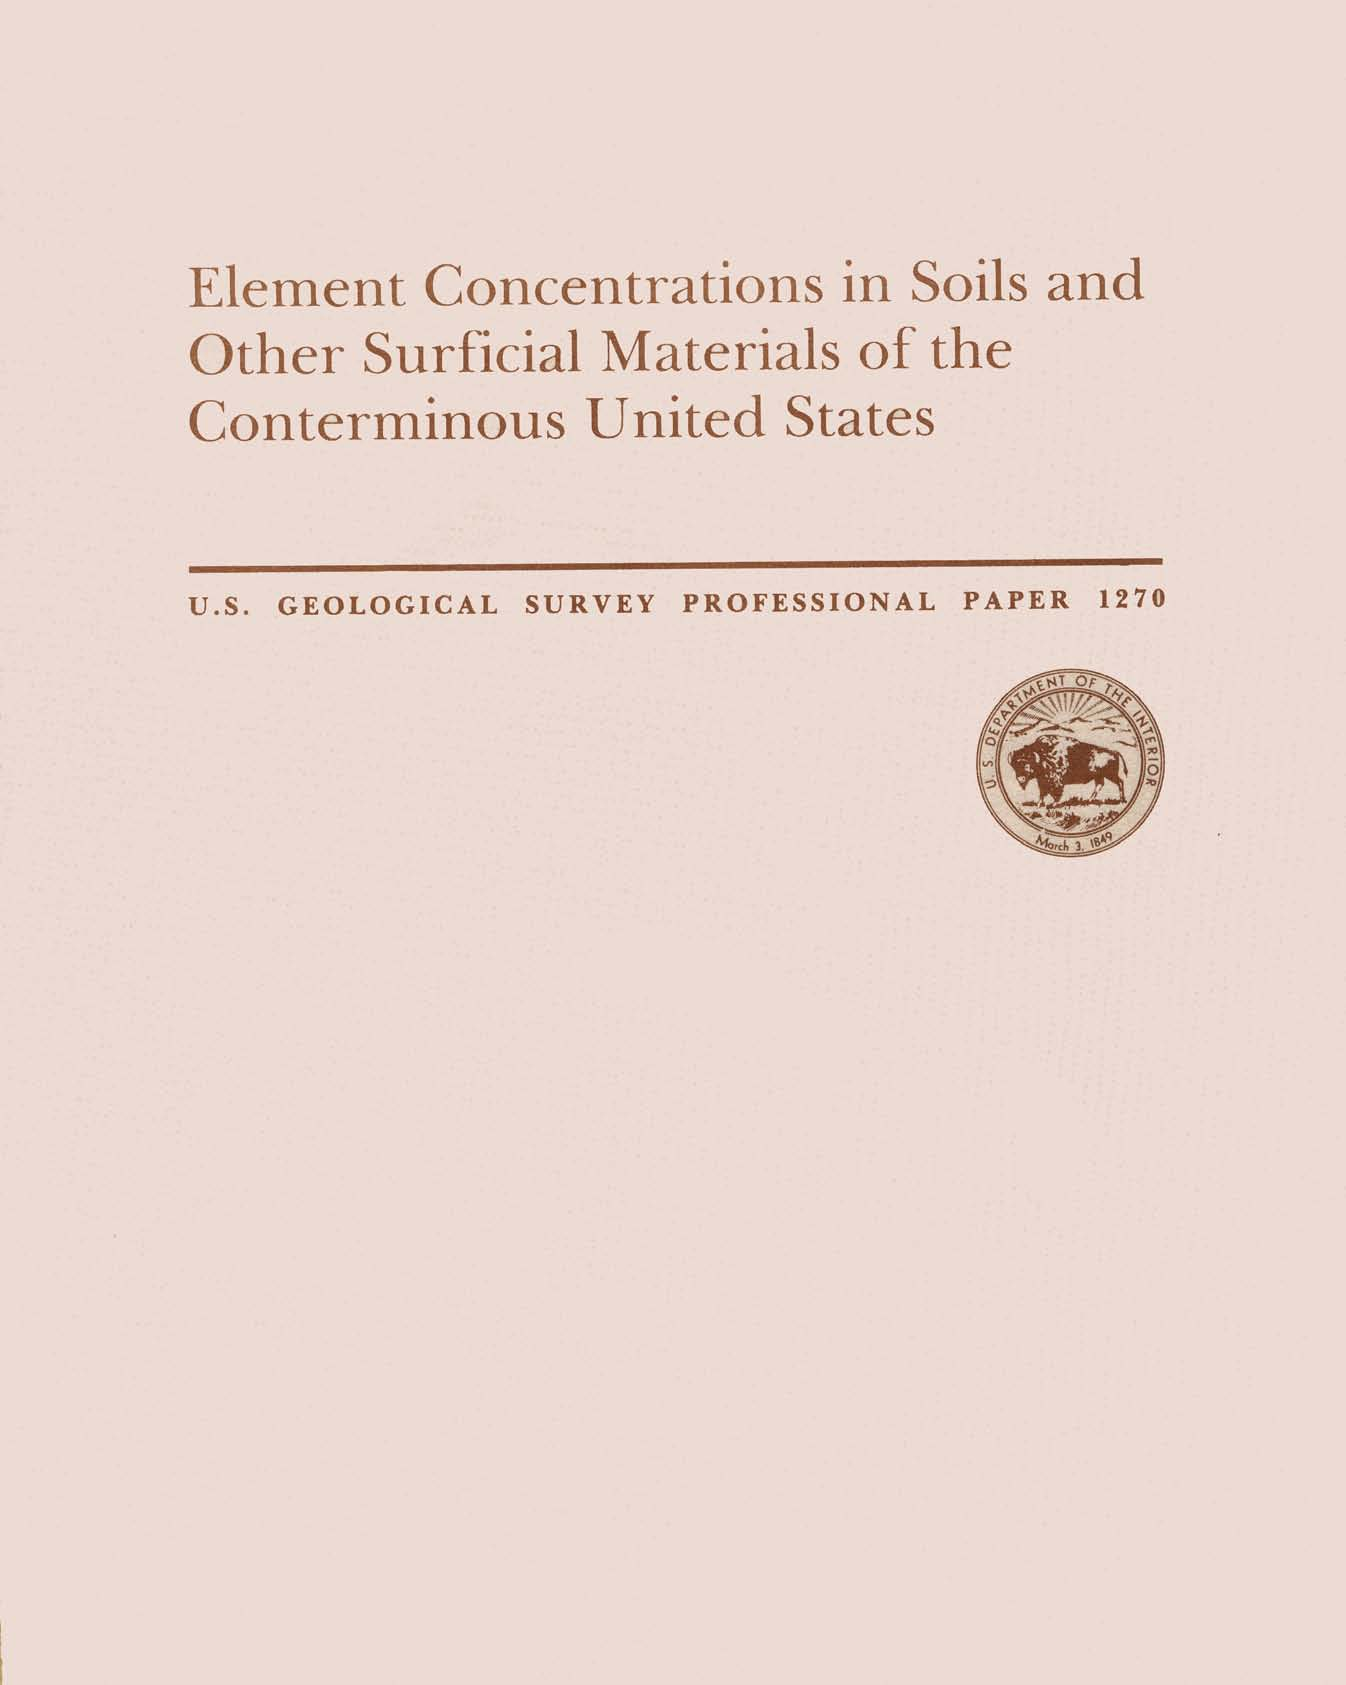 Element Concentrations in Soils and Other